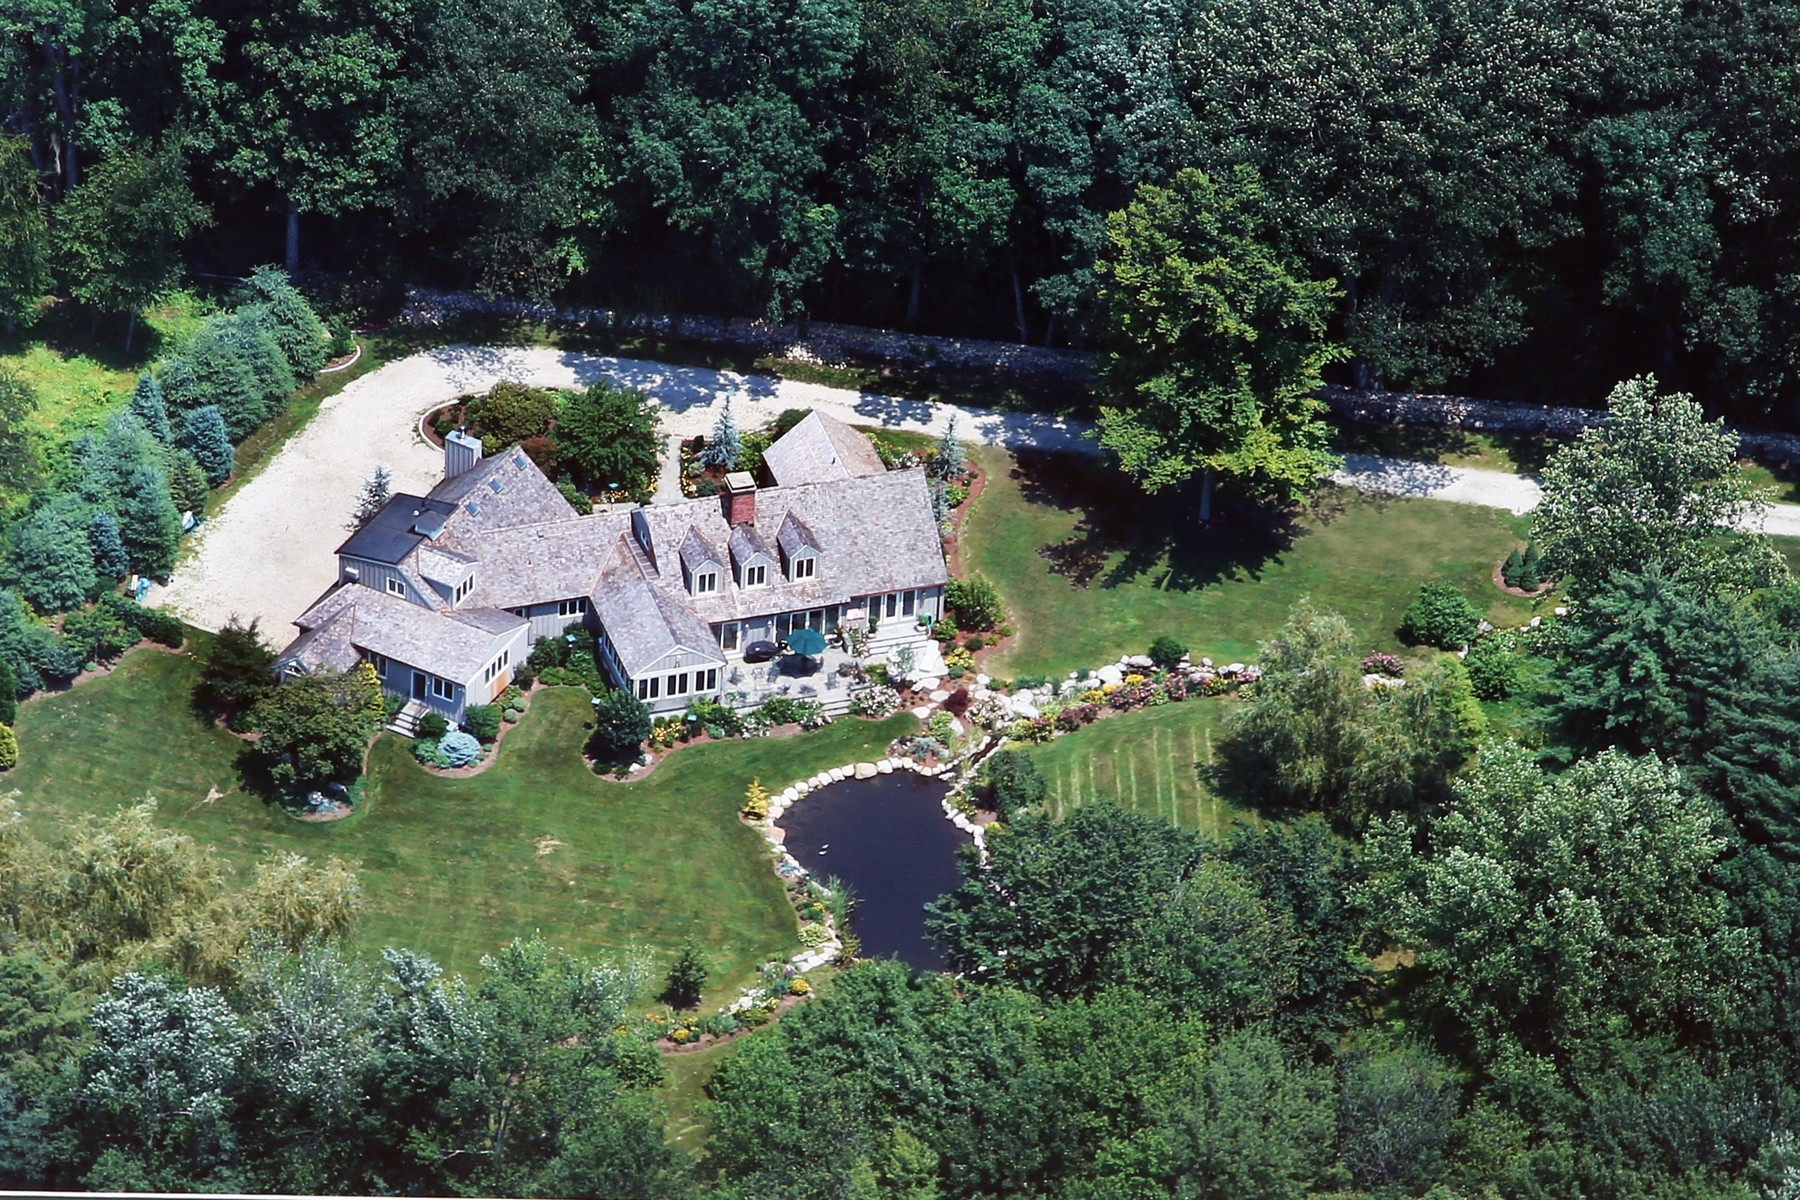 Single Family Home for Sale at Magnificent, Private Gated Custom Home in Greenfield Hill 160 Longmeadow Road Fairfield, Connecticut 06824 United States